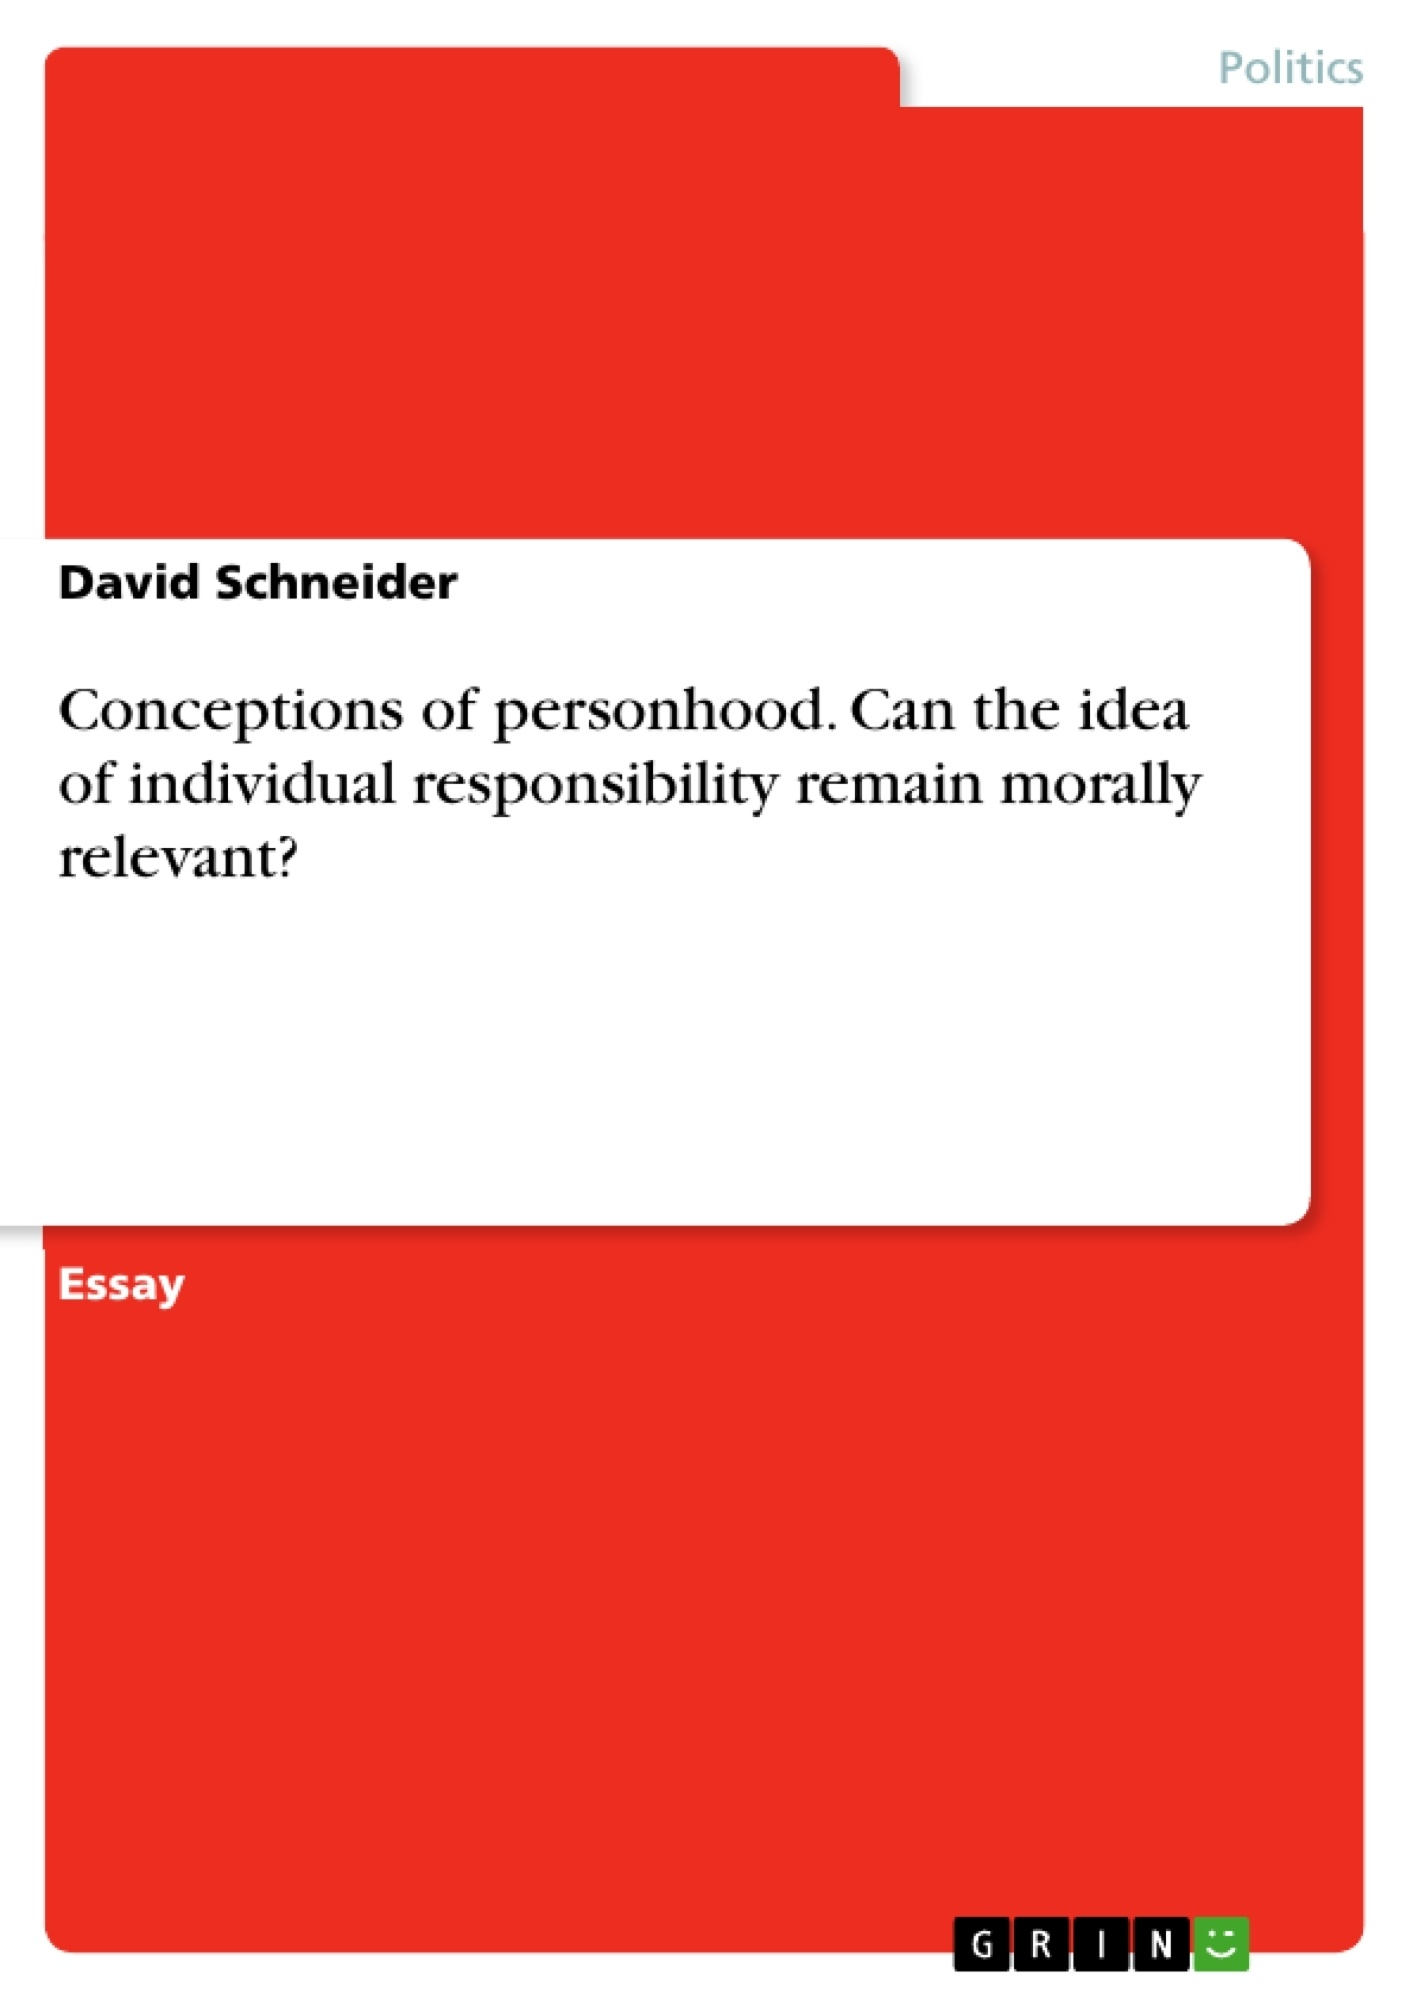 Title: Conceptions of personhood. Can the idea of individual responsibility remain morally relevant?